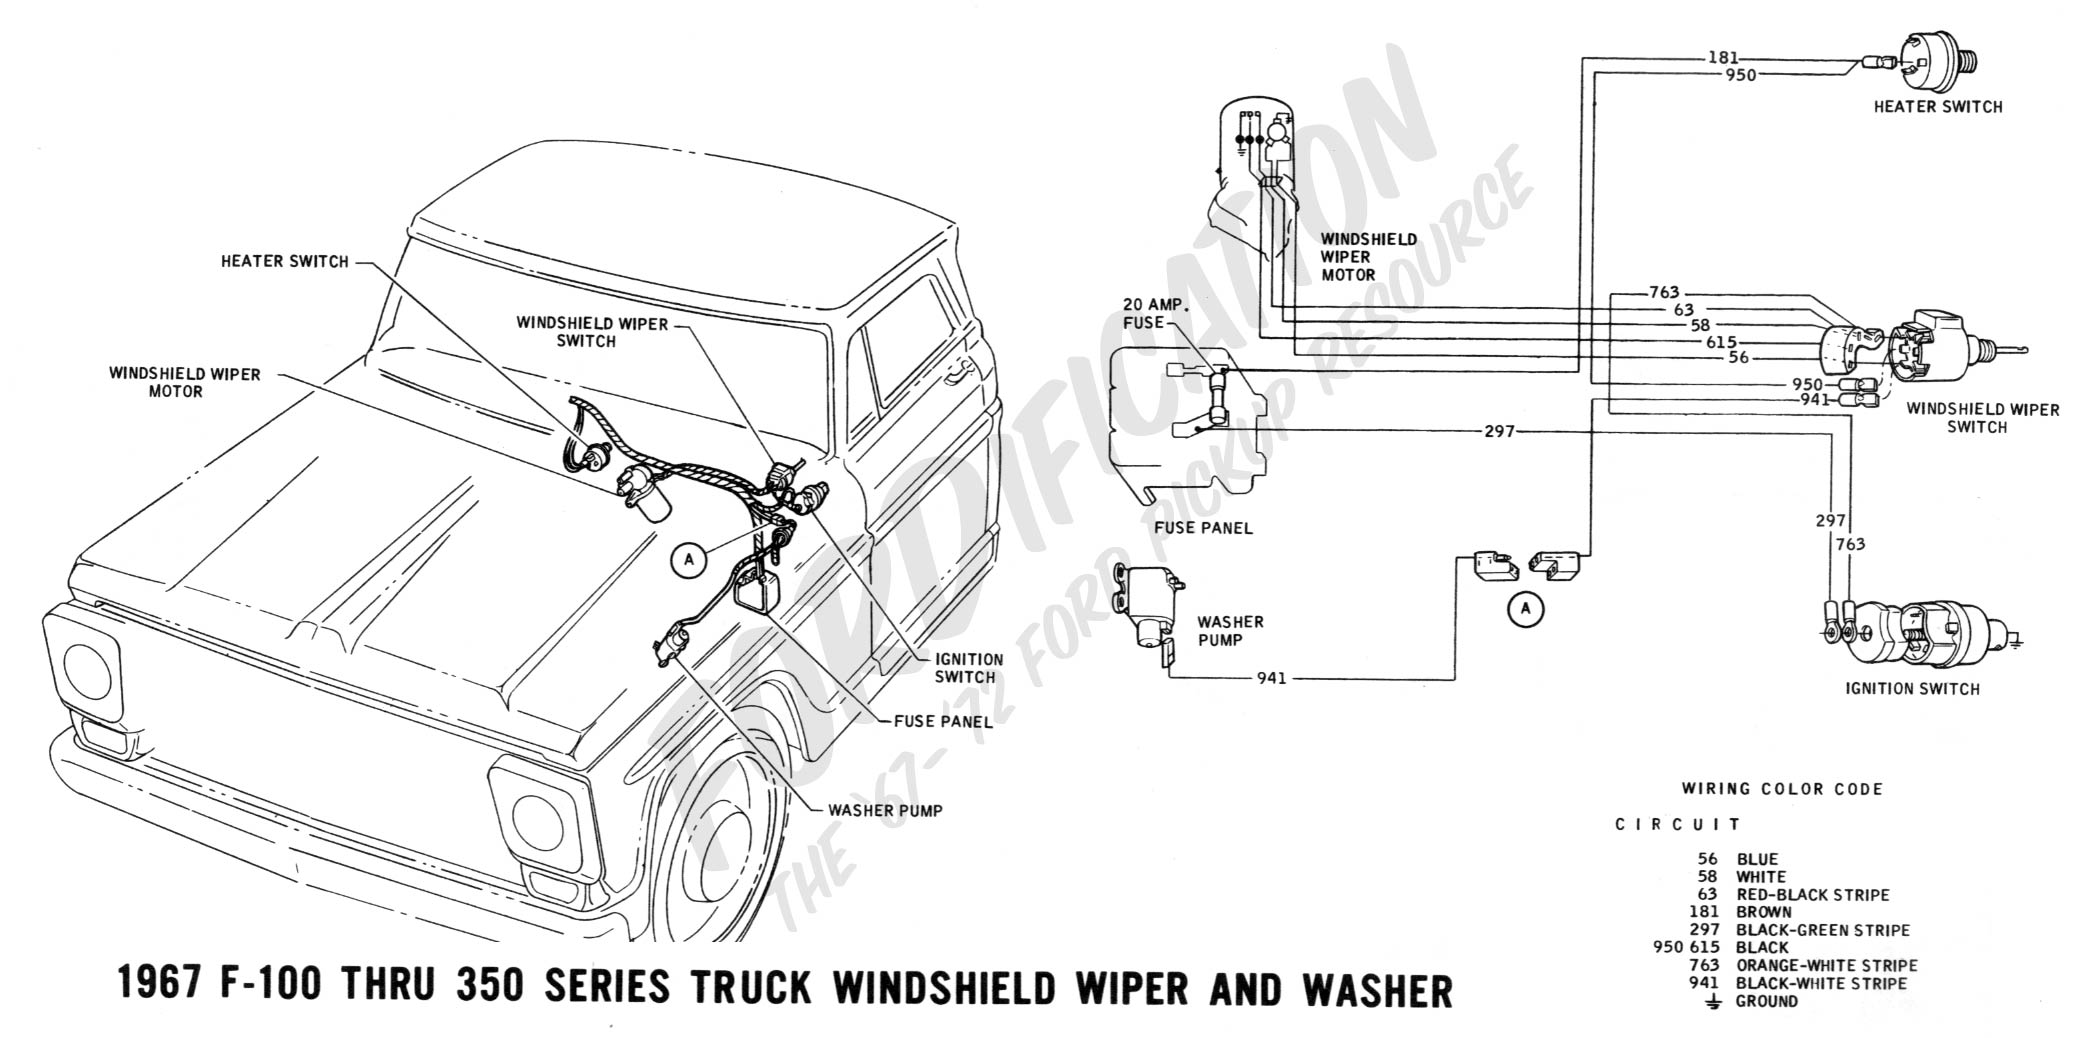 1967 Ford F150 Wiring Diagram Reinvent Your 2004 Blend Door Schematic Truck Technical Drawings And Schematics Section H Rh Fordification Com F 150 2005